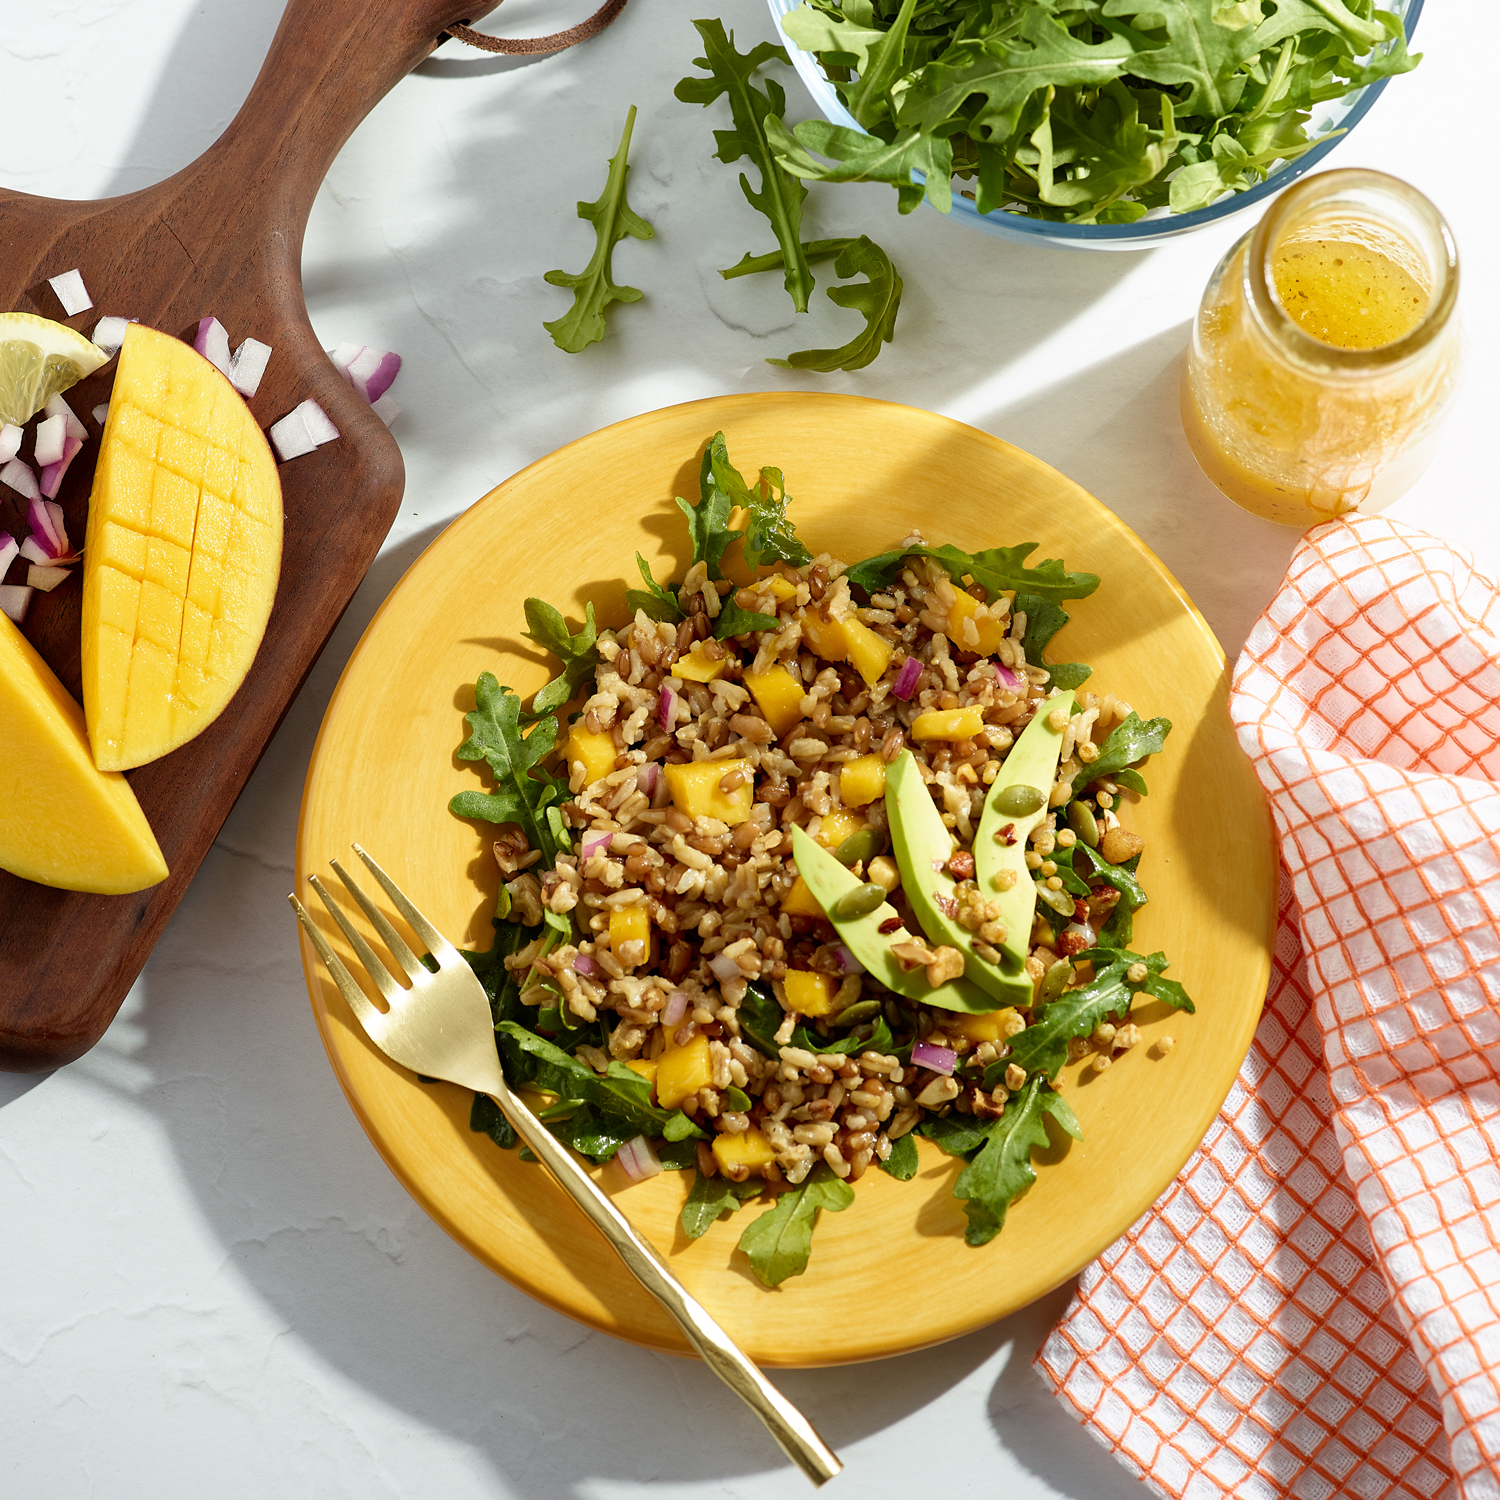 Overhead view of a yellow plate on a white background with an arugula salad with MWELL grains and avocados. A glass container of yellow vinagette dressing, cutting board with mango and onions and bowl of fresh arugula surrounds the plate. A white and orange pattered dish cloth is beside the plate.